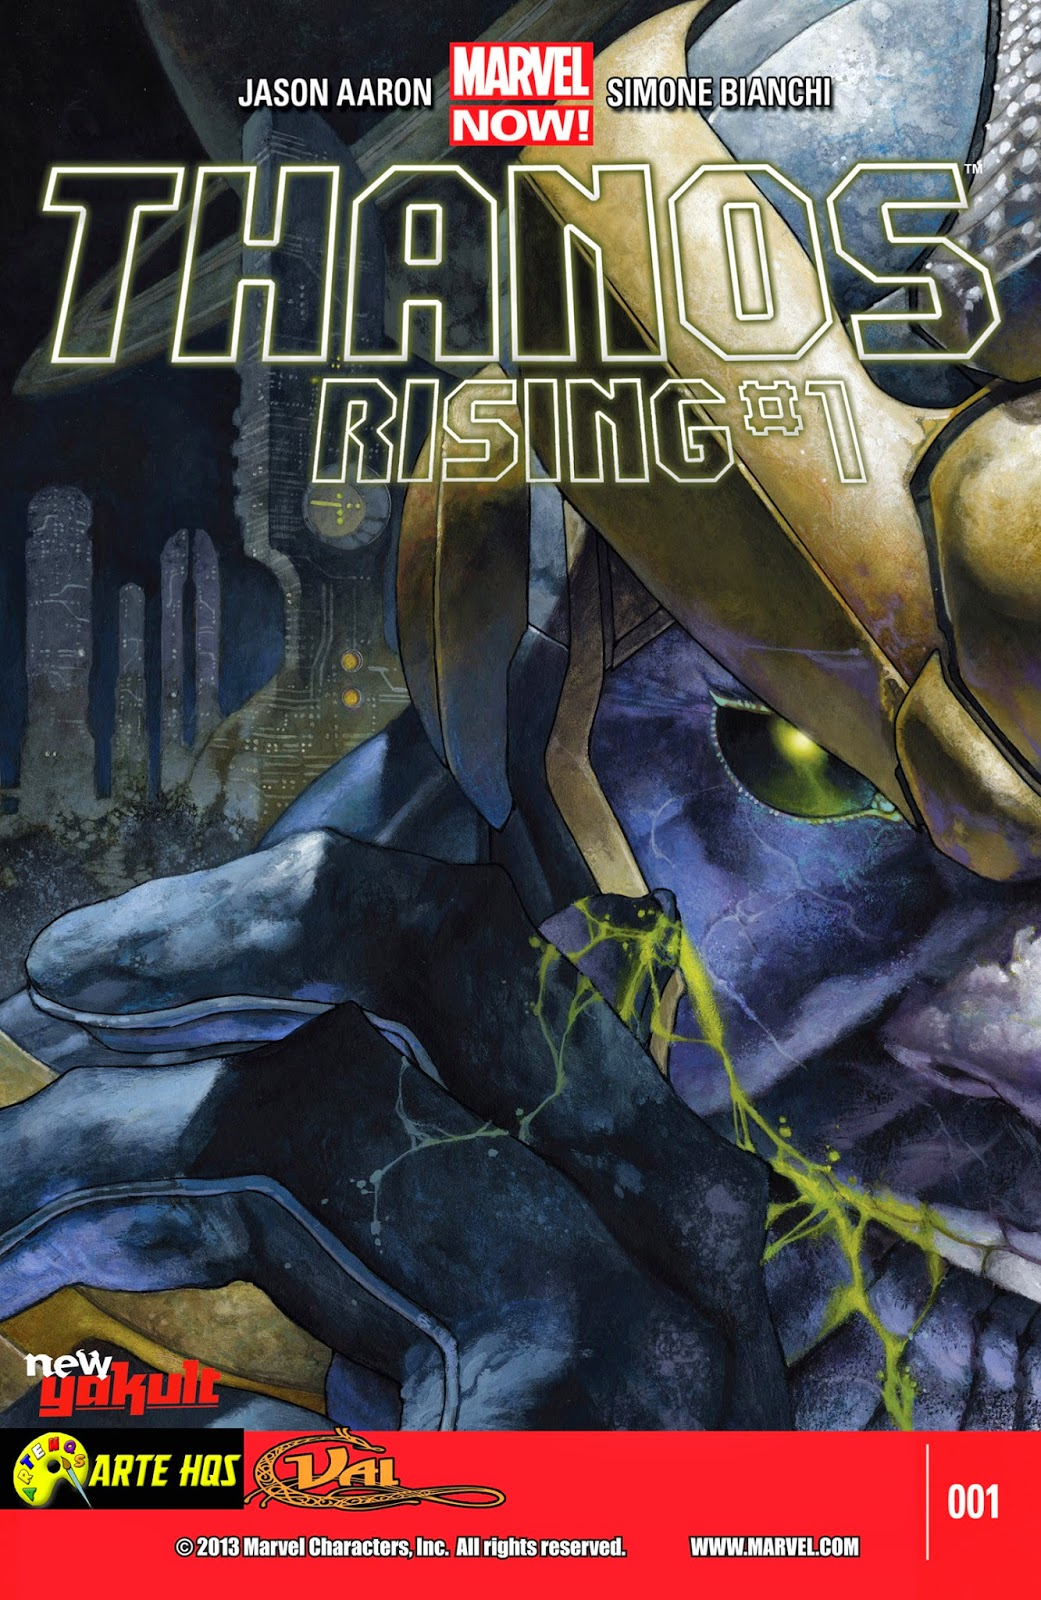 Nova Marvel! Thanos Rising #1